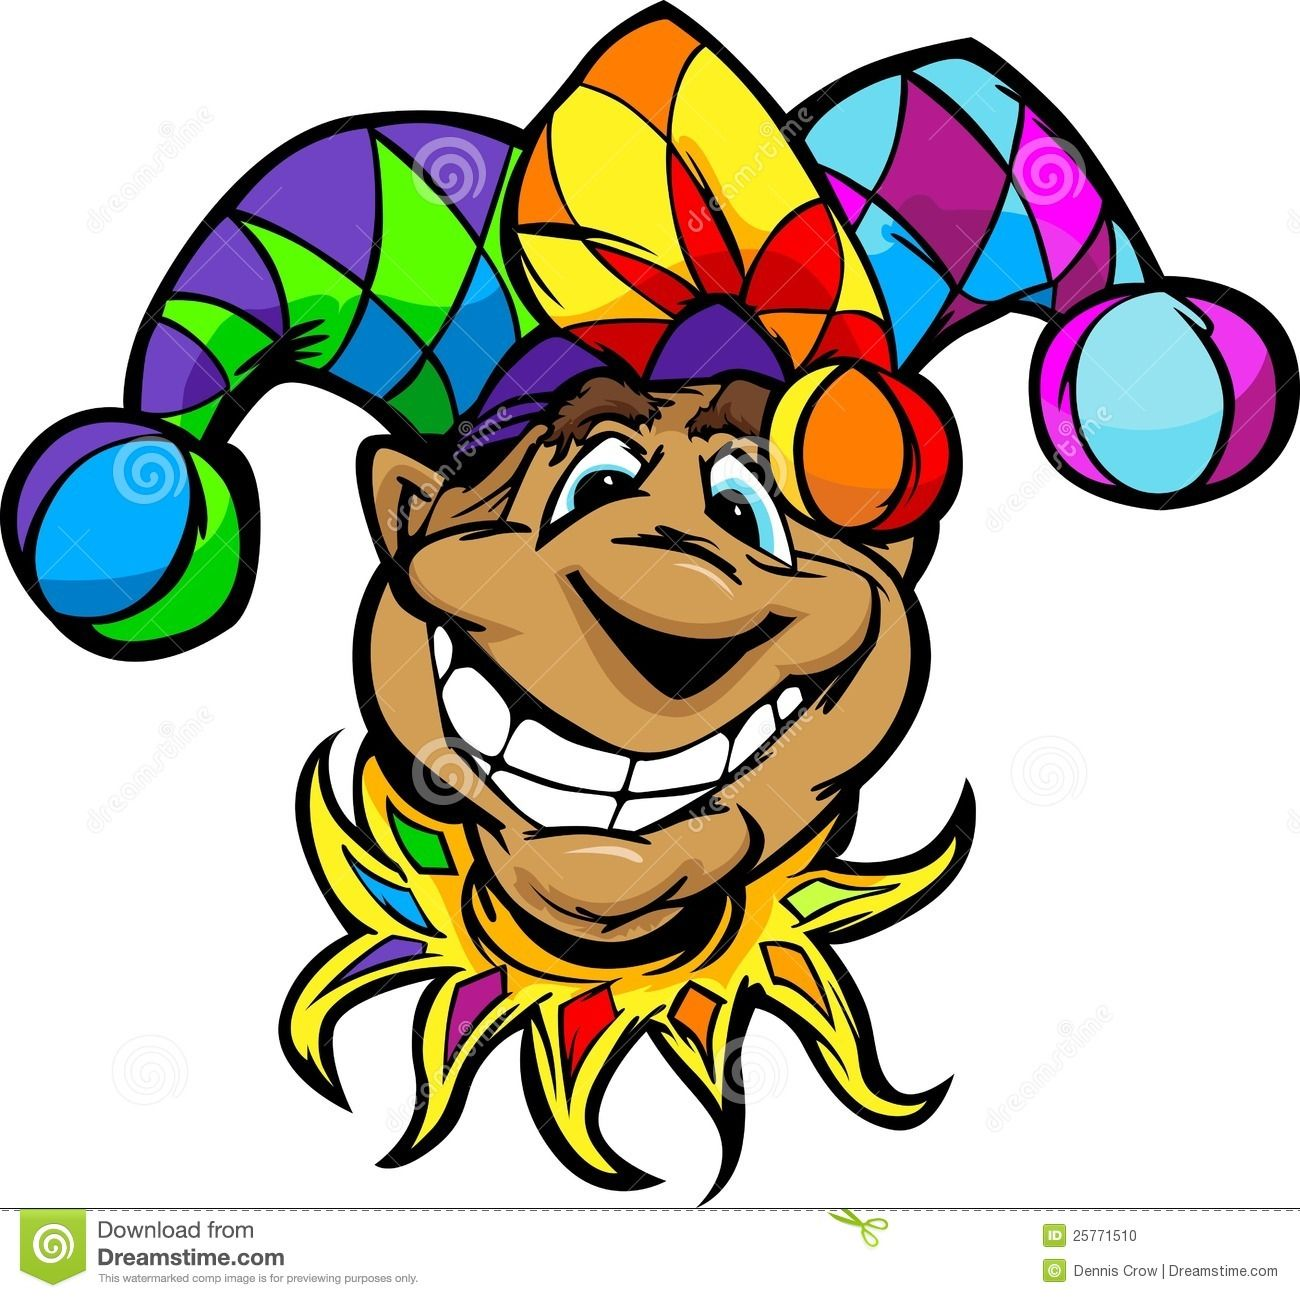 Silly court jester clipart clipart free download Happy Jester Or Joker Cartoon Illustratio - Download From ... clipart free download